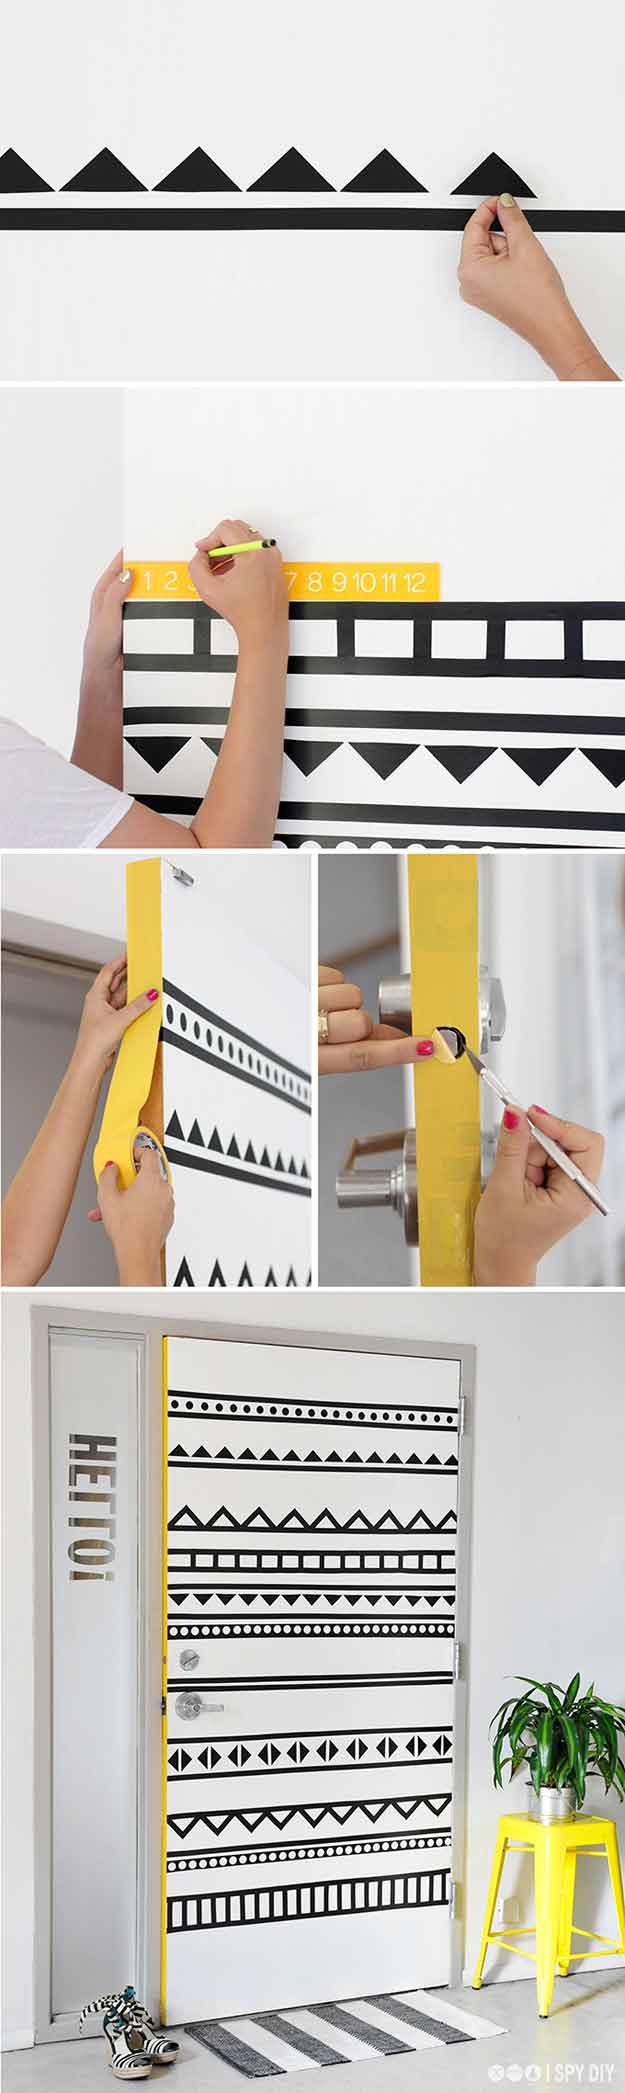 37 Insanely Cute Teen Bedroom Ideas for DIY Decor   DIY Door Art. 37 Insanely Cute Teen Bedroom Ideas for DIY Decor   Crafts for Teens